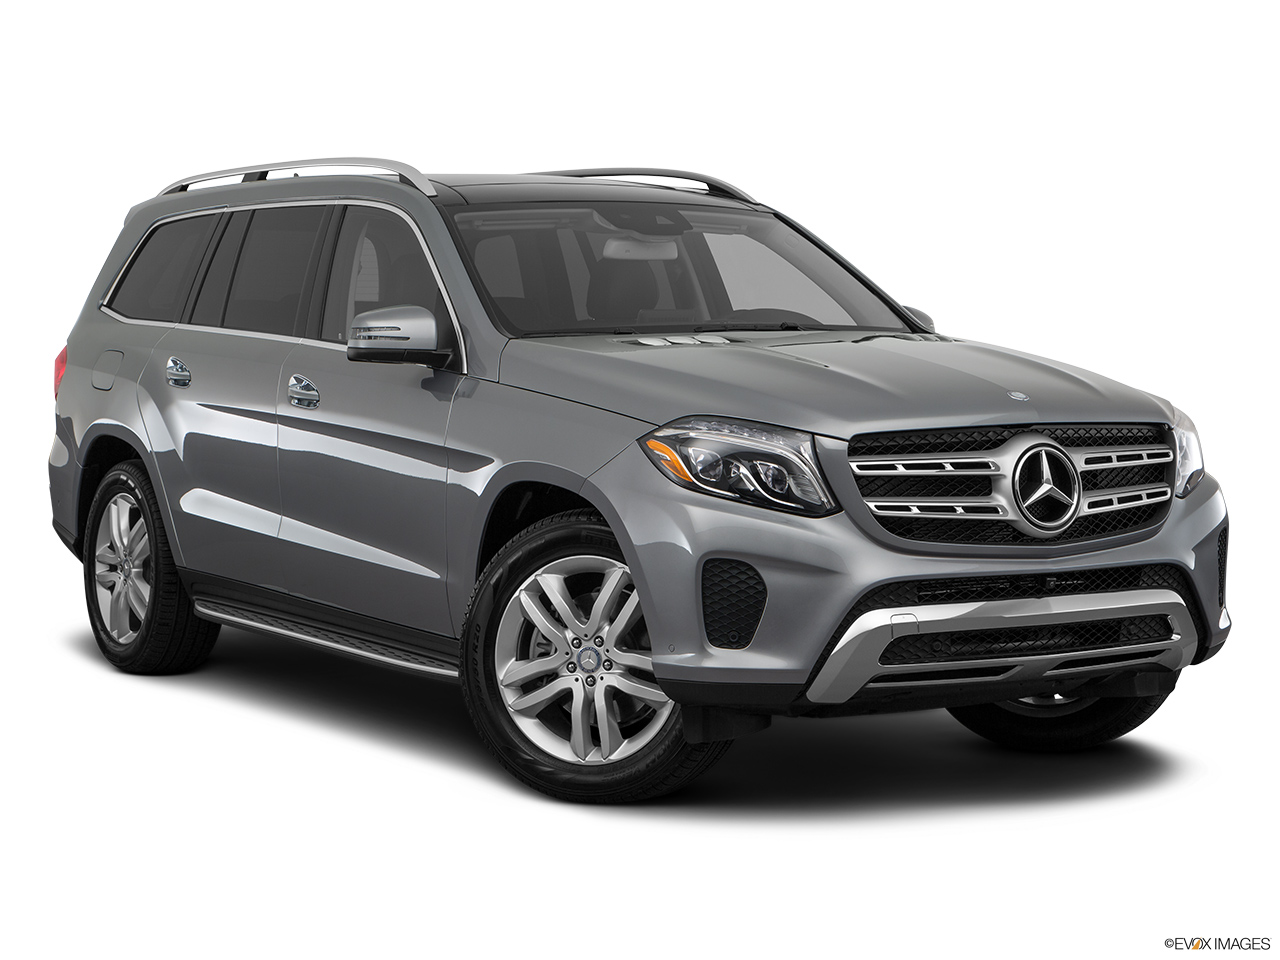 Car pictures list for mercedes benz gls 2017 500 4matic for Mercedes benz bahrain